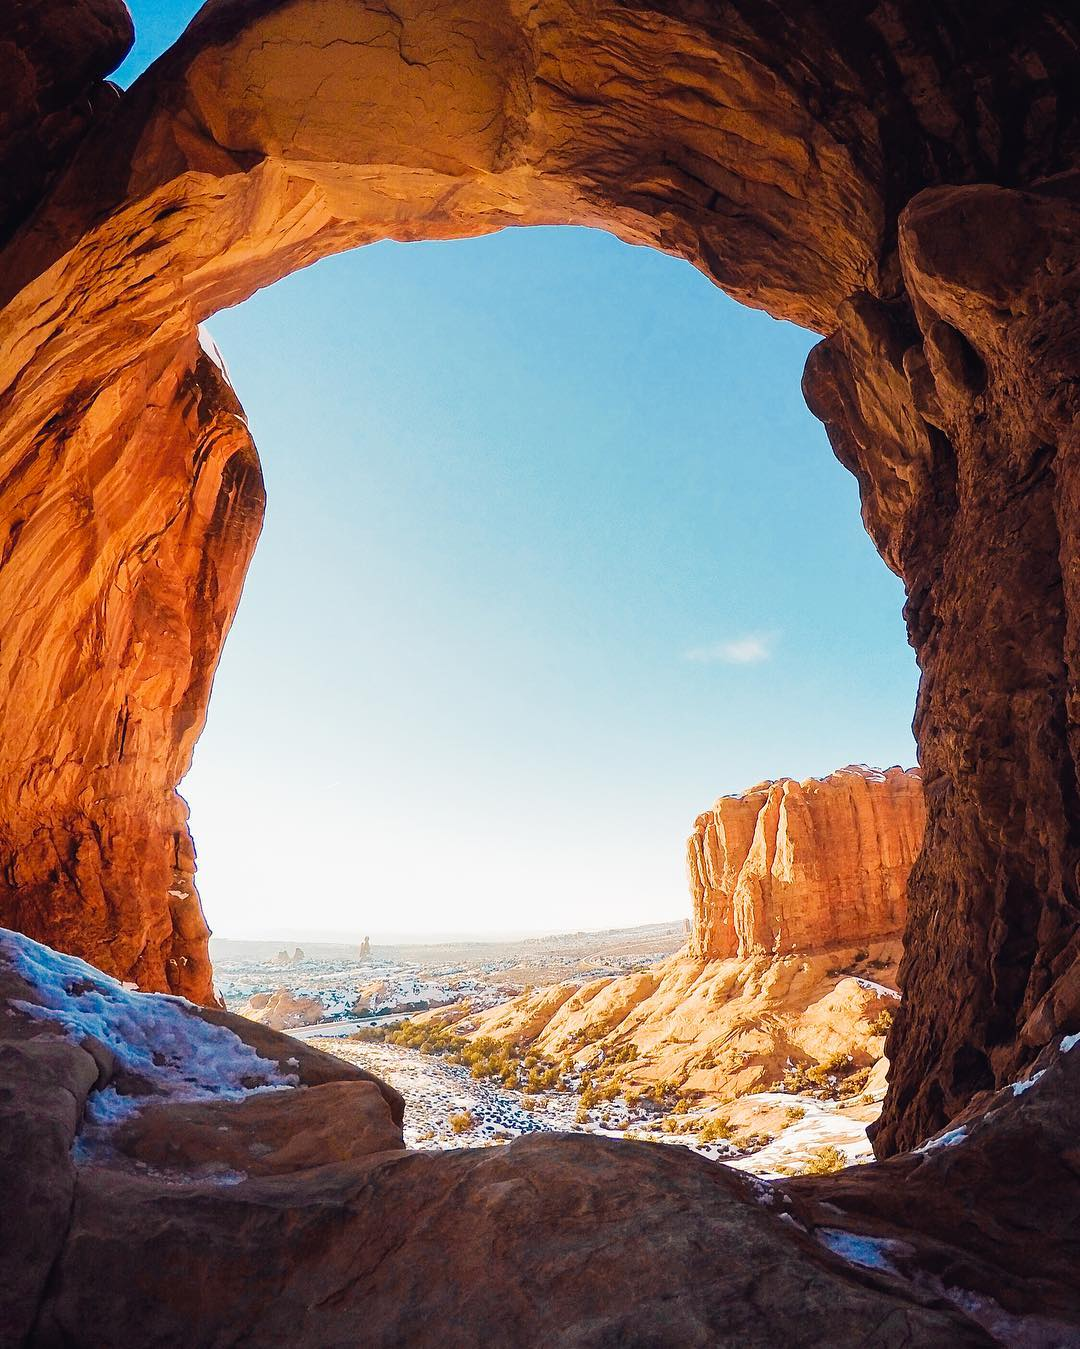 Rise and shine at @archesnps with @josh_malech! Try turning your #GoPro vertical for a long, taller shot like this. Give it a shot and share your best with us via #GoProAwards link in our bio. #GoProTravel